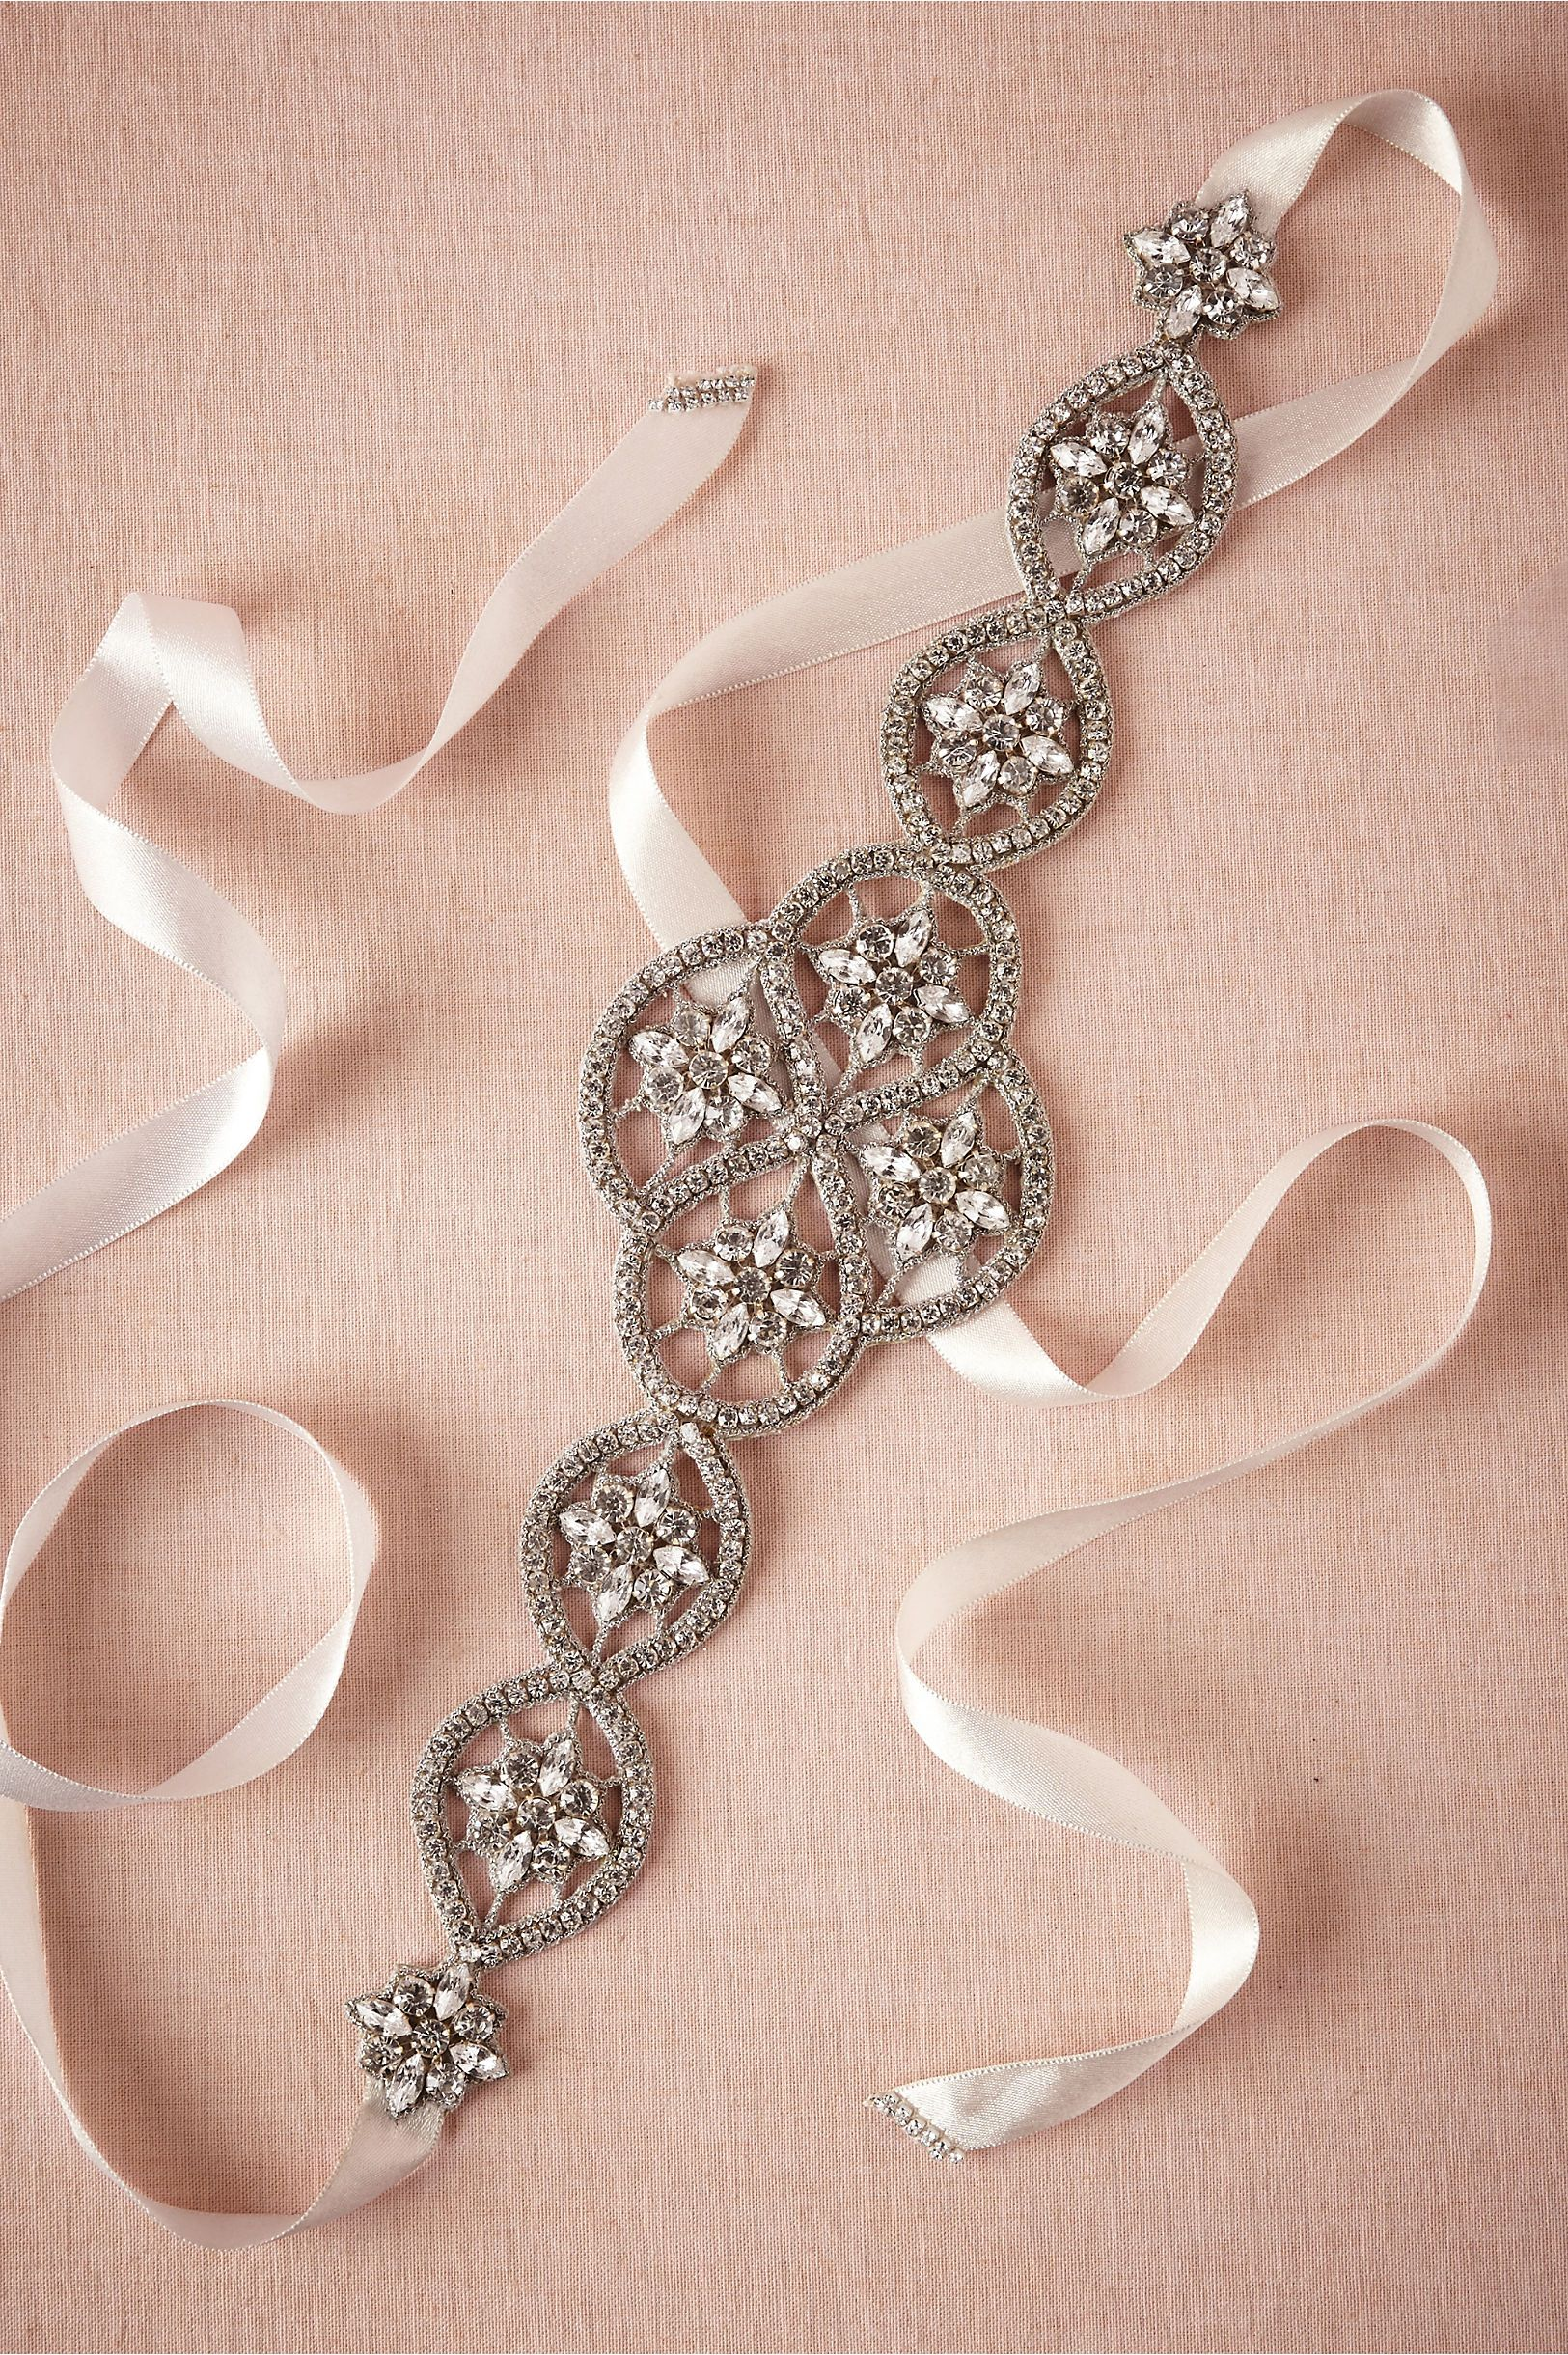 Crystal Lattice Sash in Shoes & Accessories Belts & Sashes at BHLDN ...